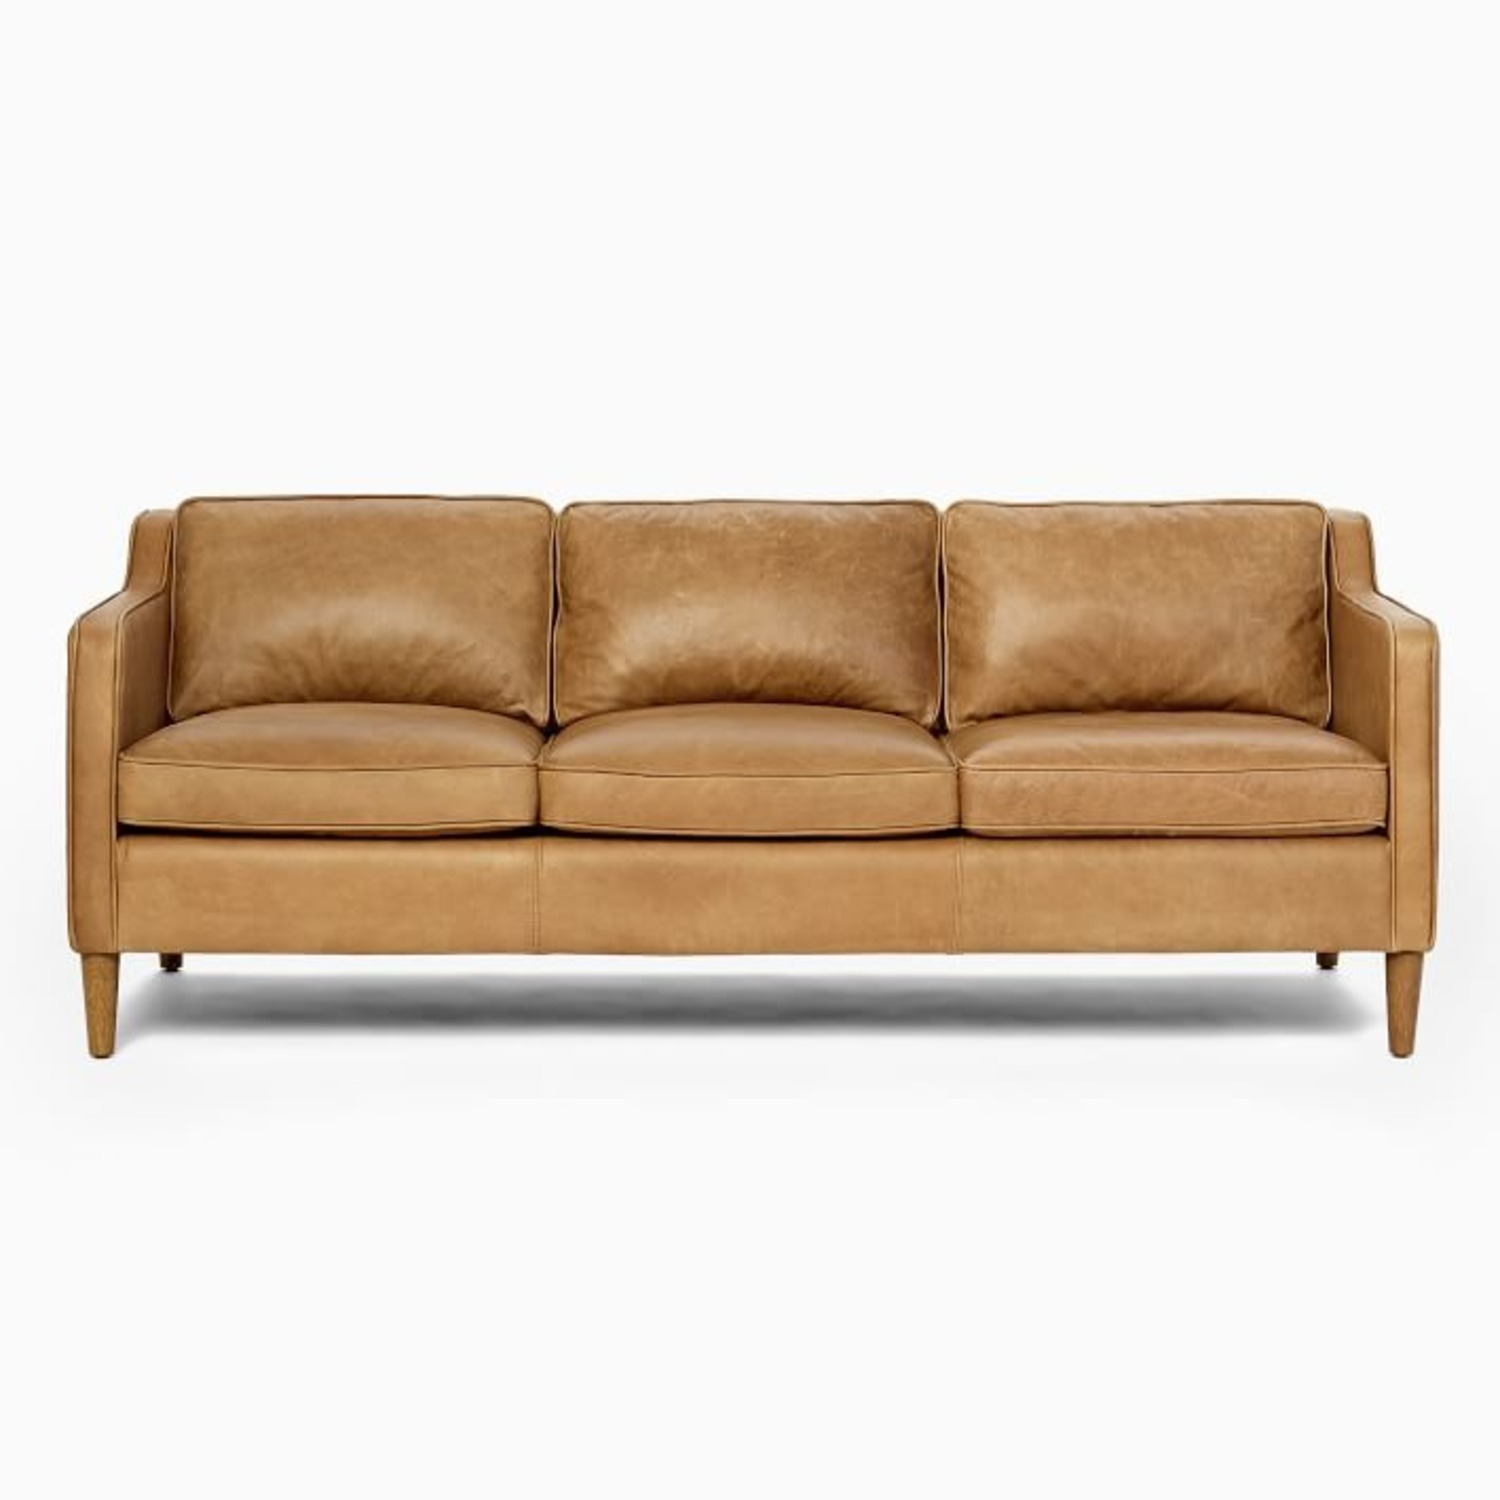 West Elm Leather Couch - image-2